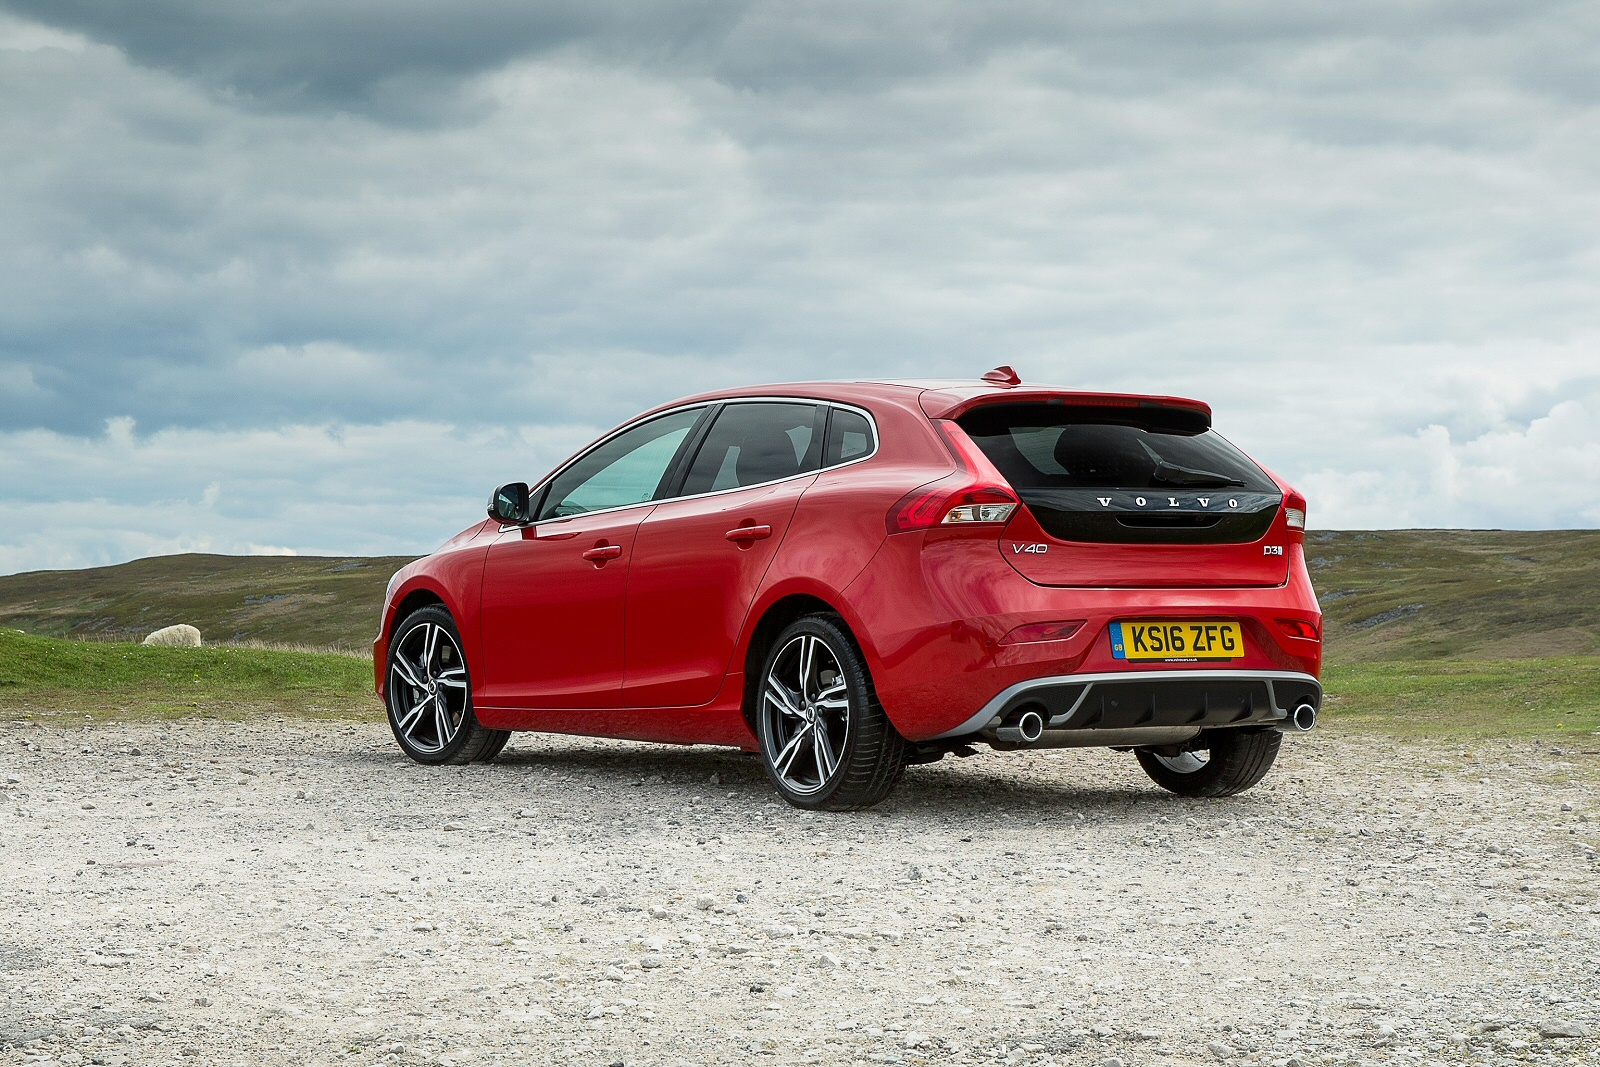 New Volvo V40 D3 4 Cyl 150 Cross Country Pro 5dr